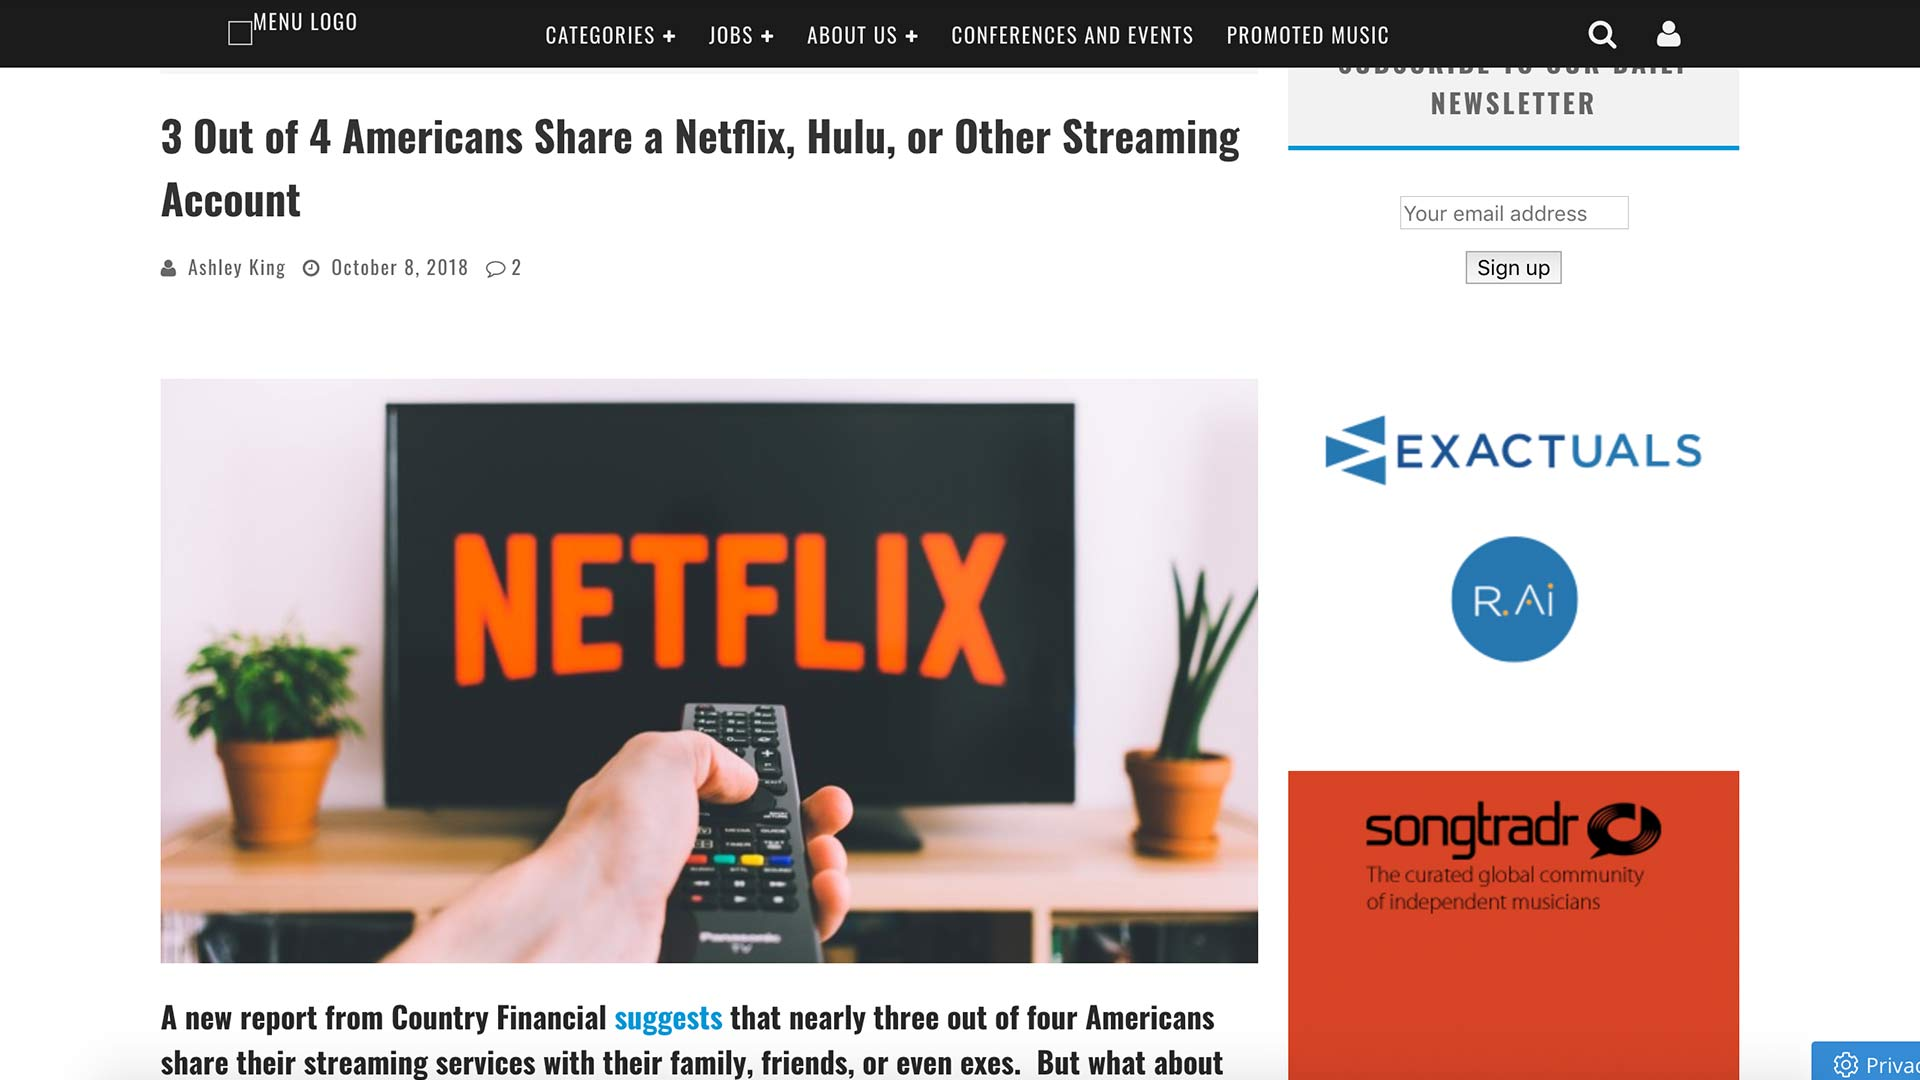 Fairness Rocks News 3 Out of 4 Americans Share a Netflix, Hulu, or Other Streaming Account